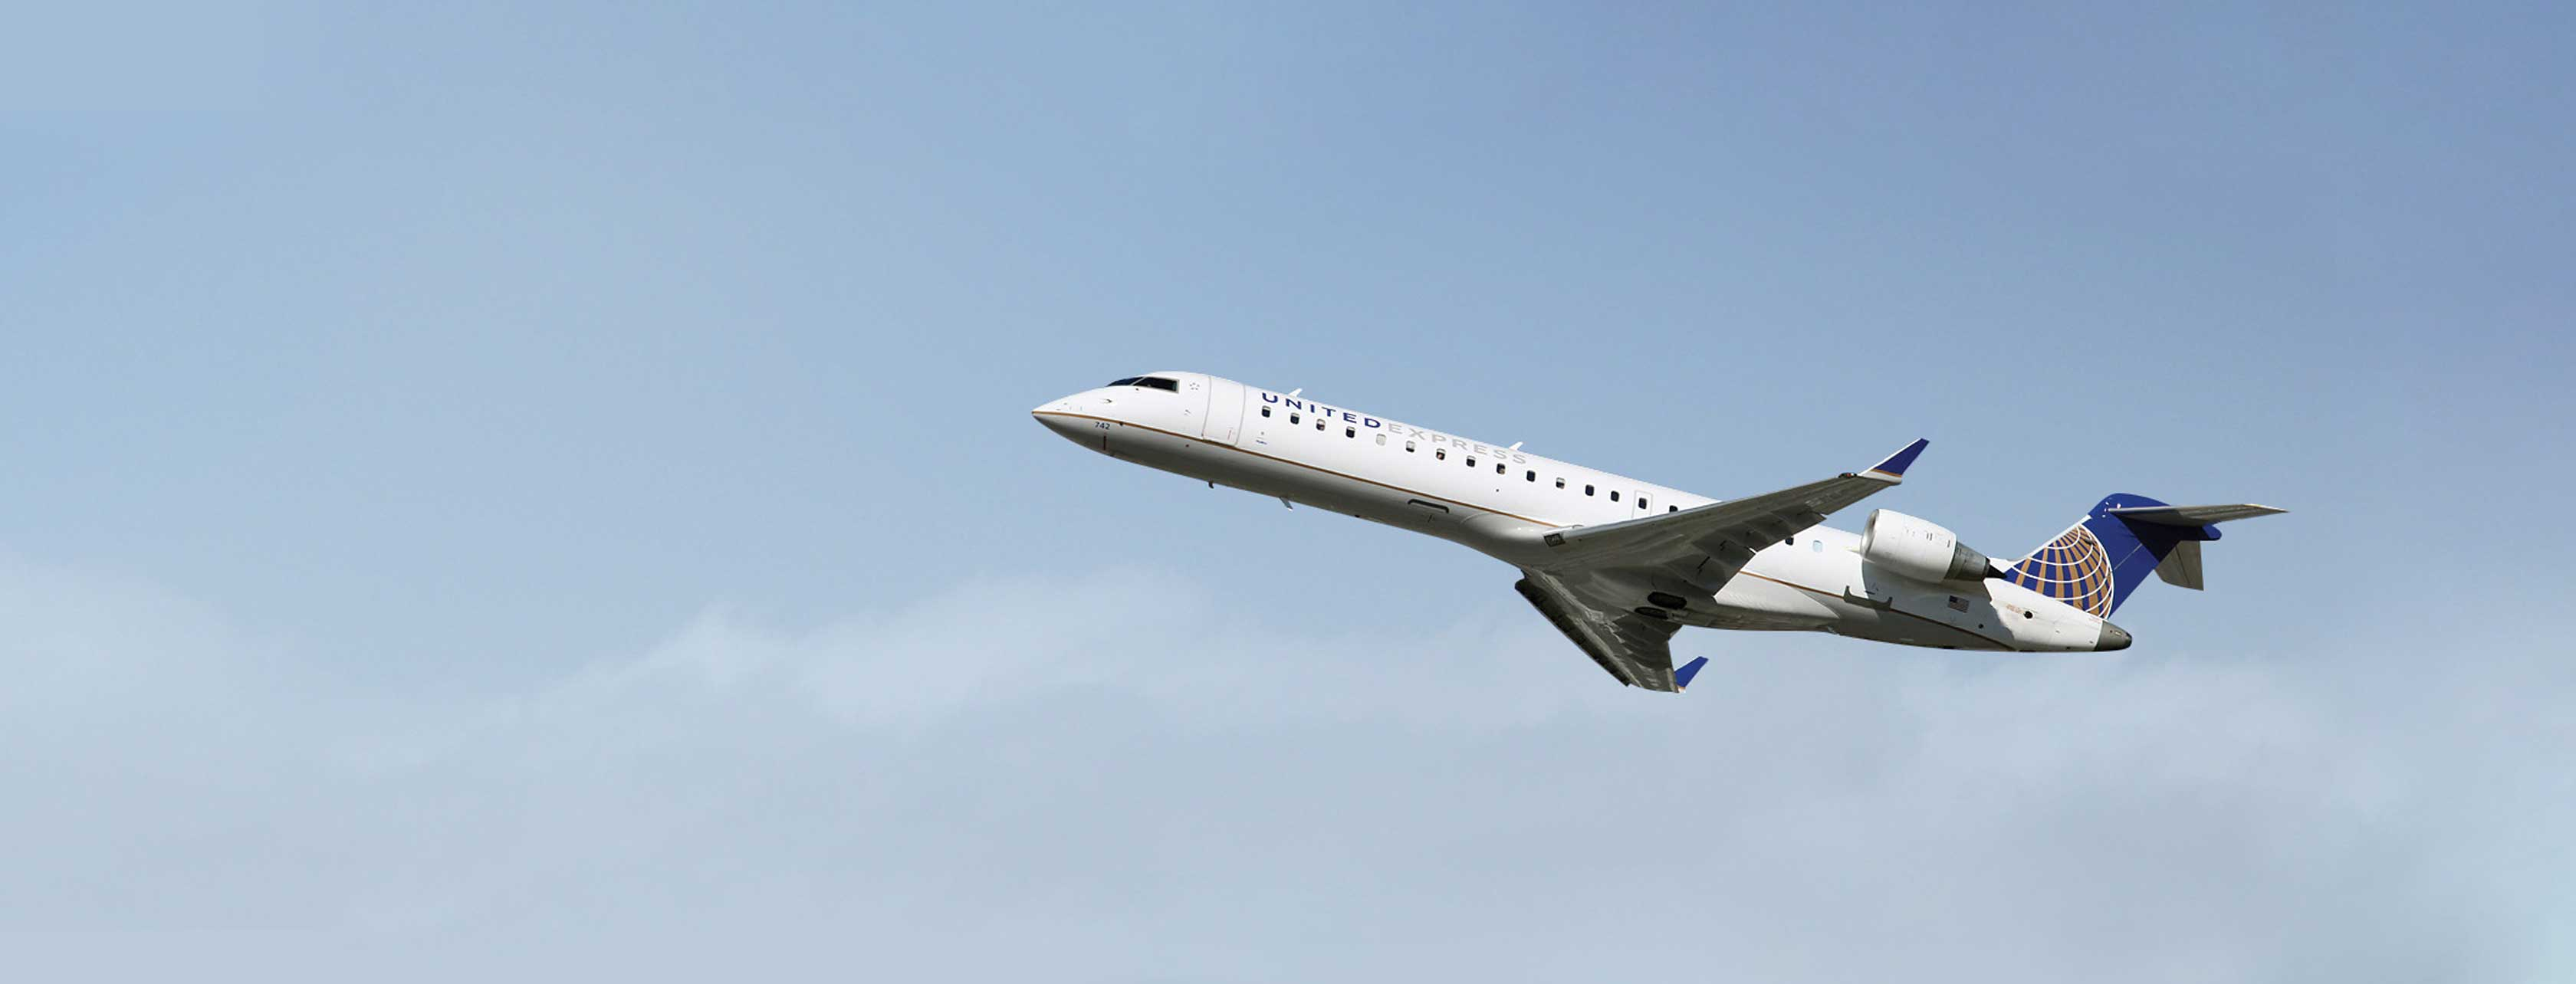 United CRJ flying